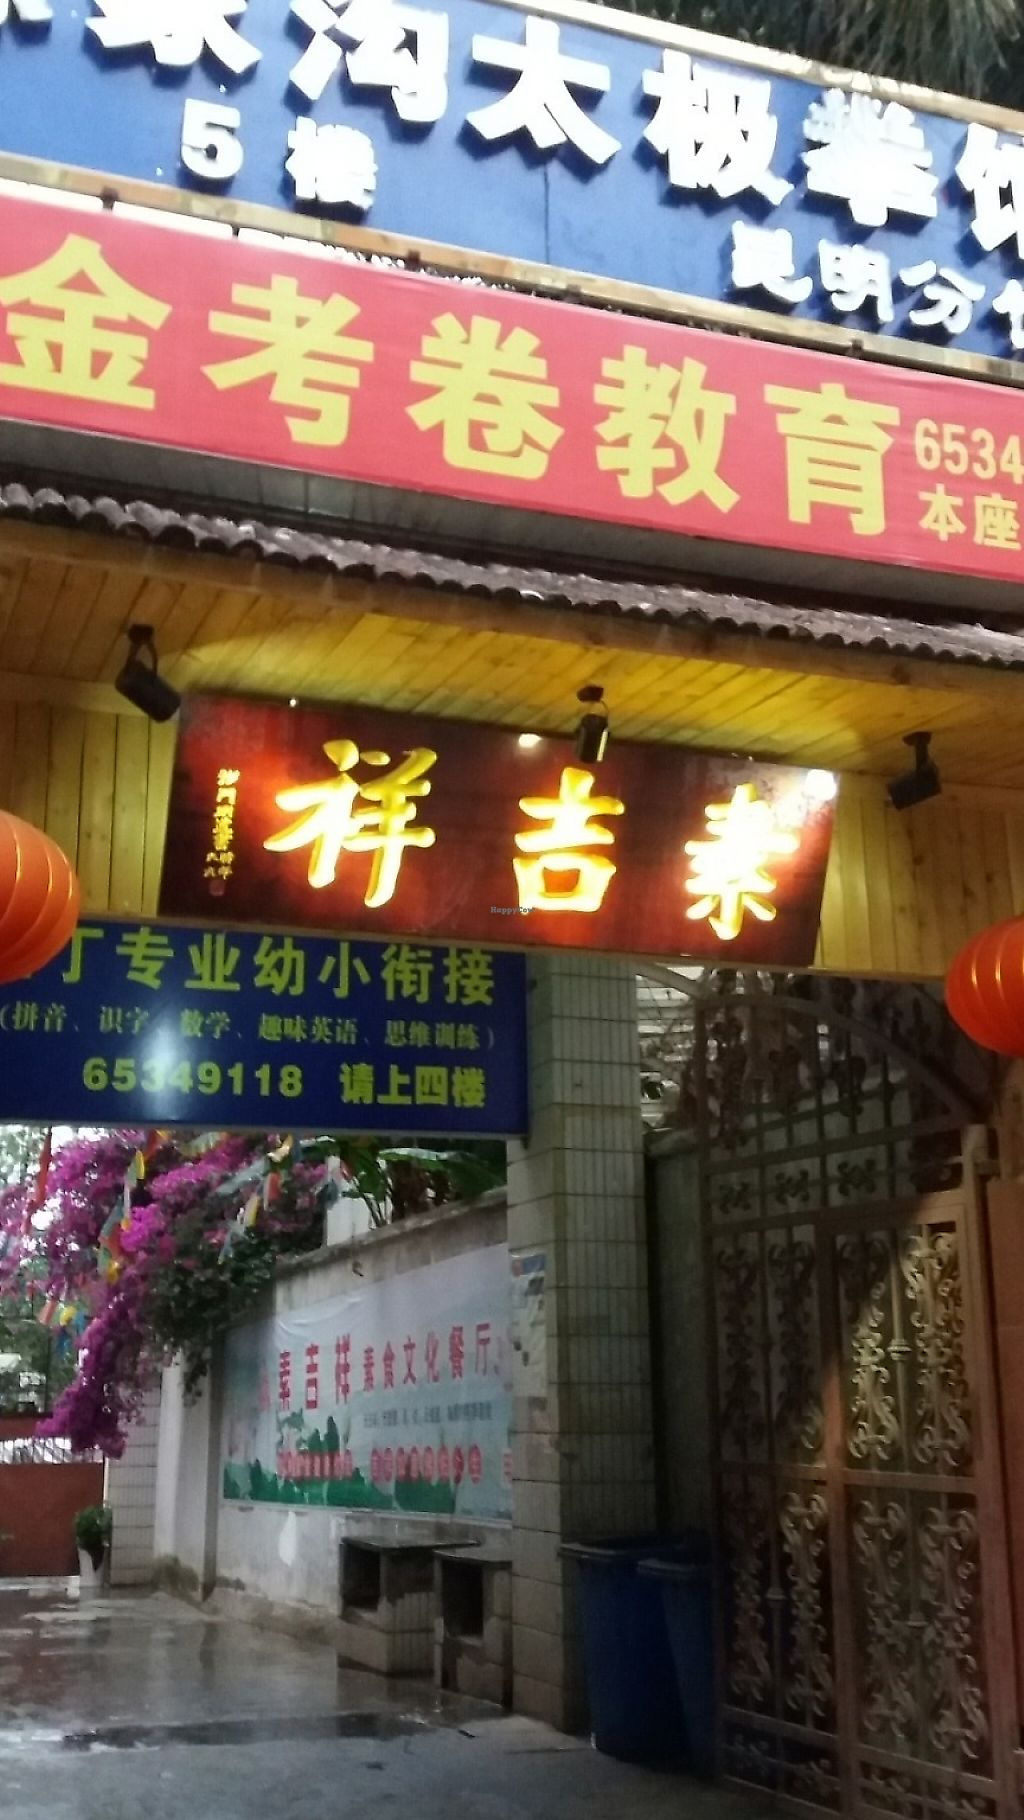 """Photo of Su Ji Xiang  by <a href=""""/members/profile/huawhenua"""">huawhenua</a> <br/>Entrance to the alley leading to Su Ji Xiang buffet <br/> May 16, 2017  - <a href='/contact/abuse/image/56710/265065'>Report</a>"""